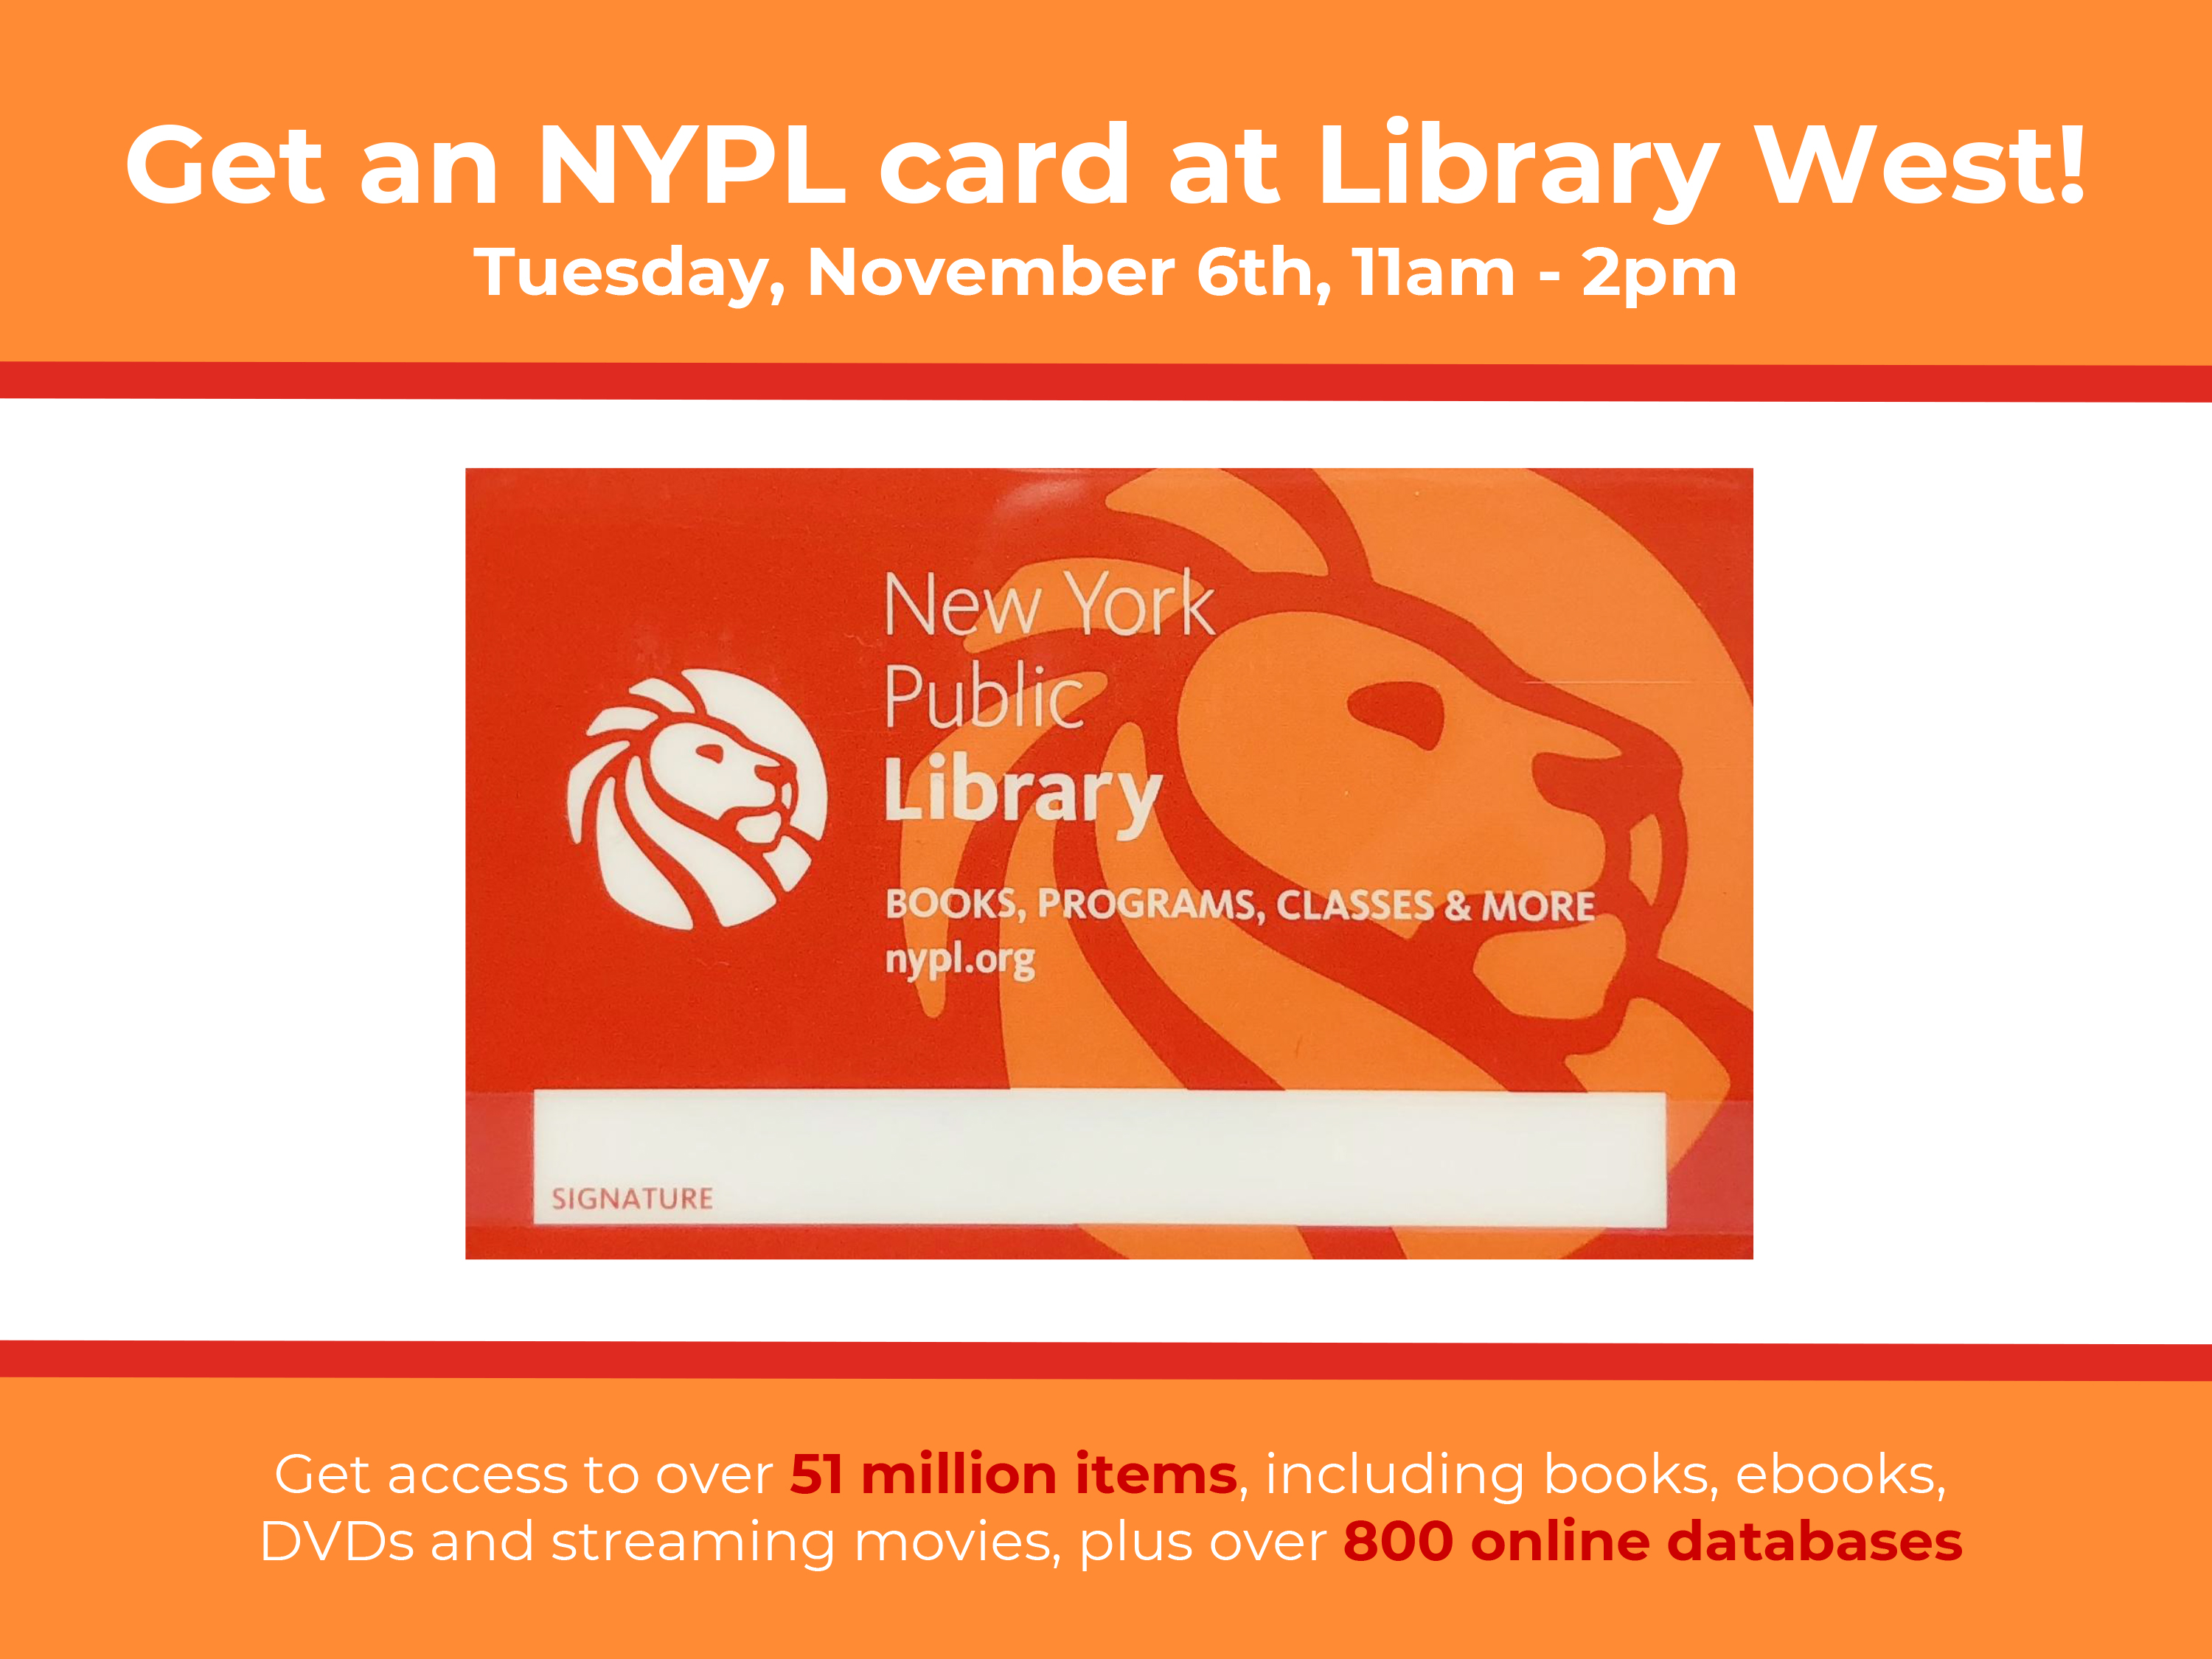 Get an NYPL Card at Library West